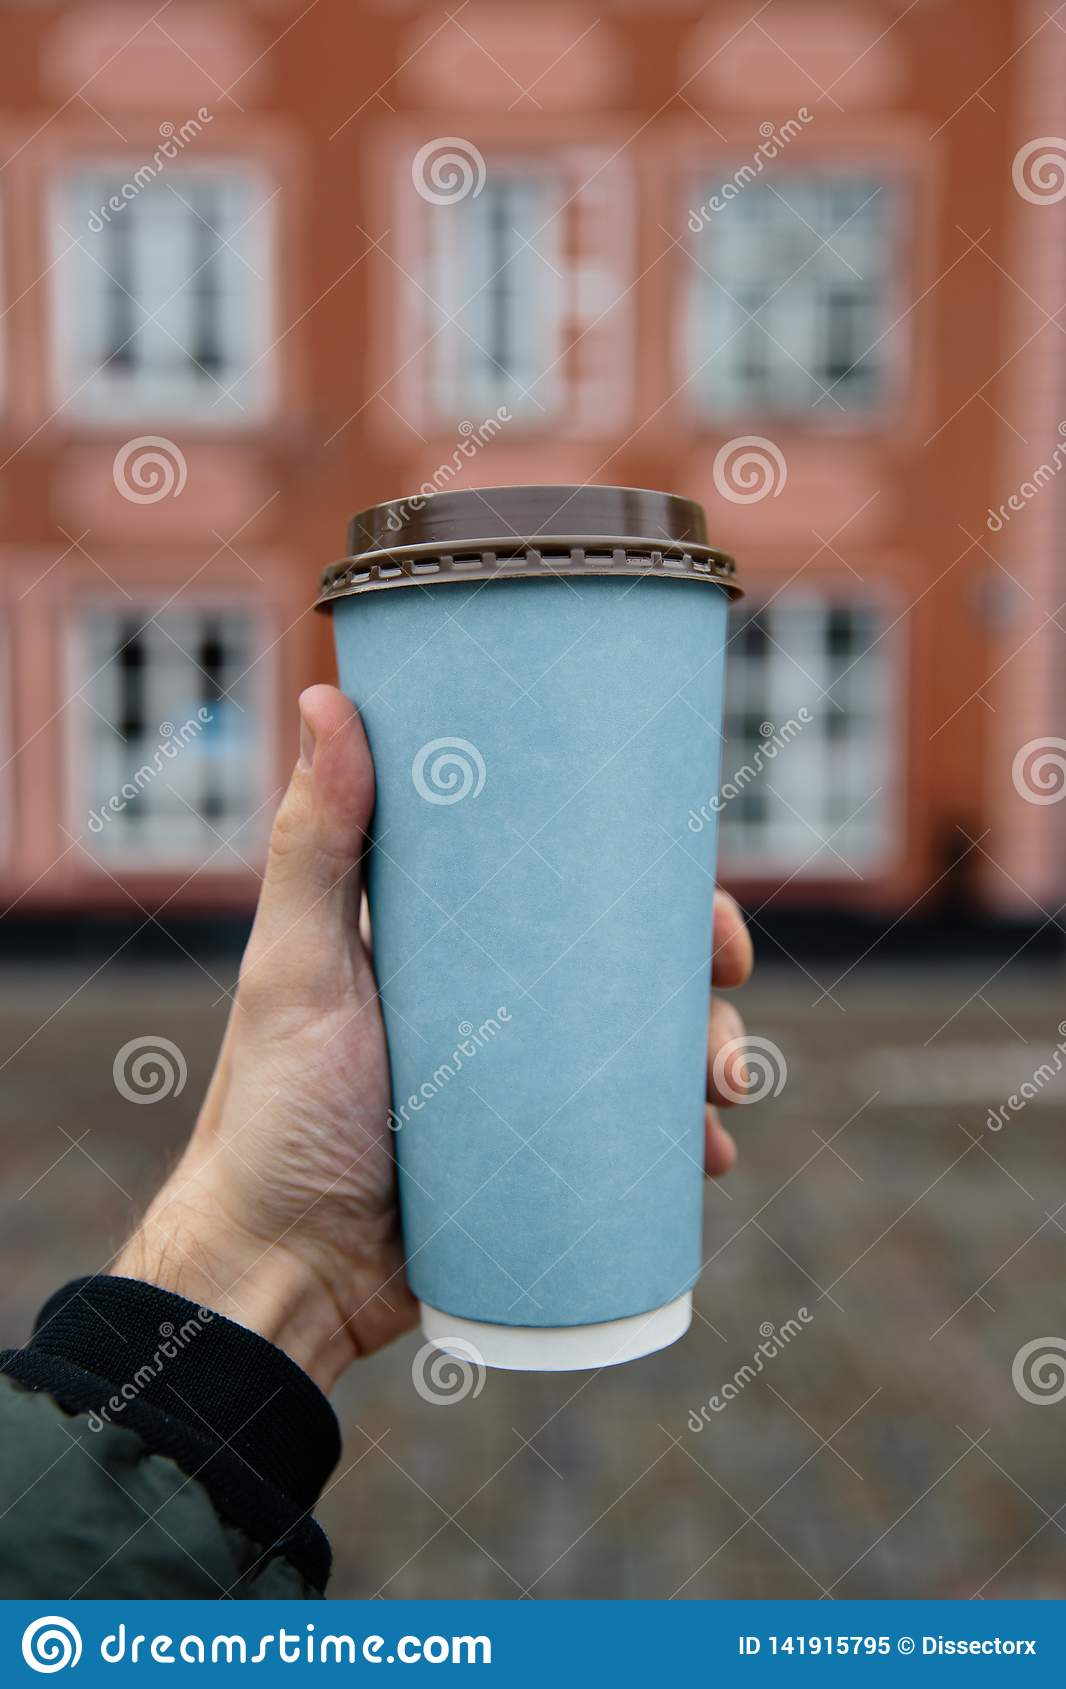 Mockup ad: Male hand holding a blank paper cup in an old town background